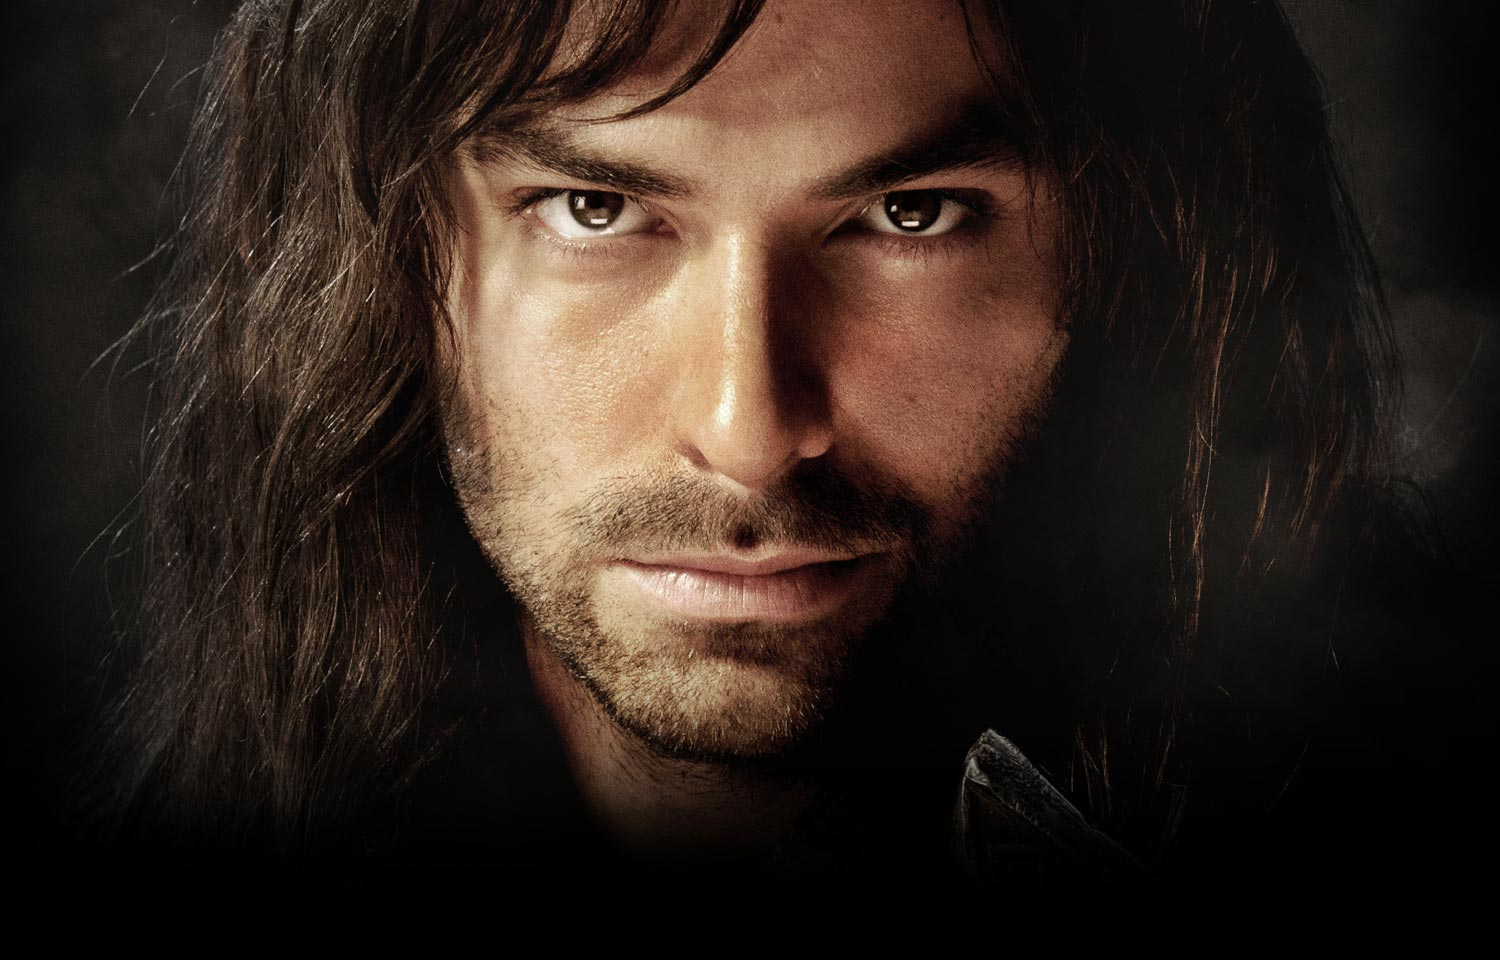 Fili and Kili images Kili Wallpaper HD wallpaper and background 1500x960